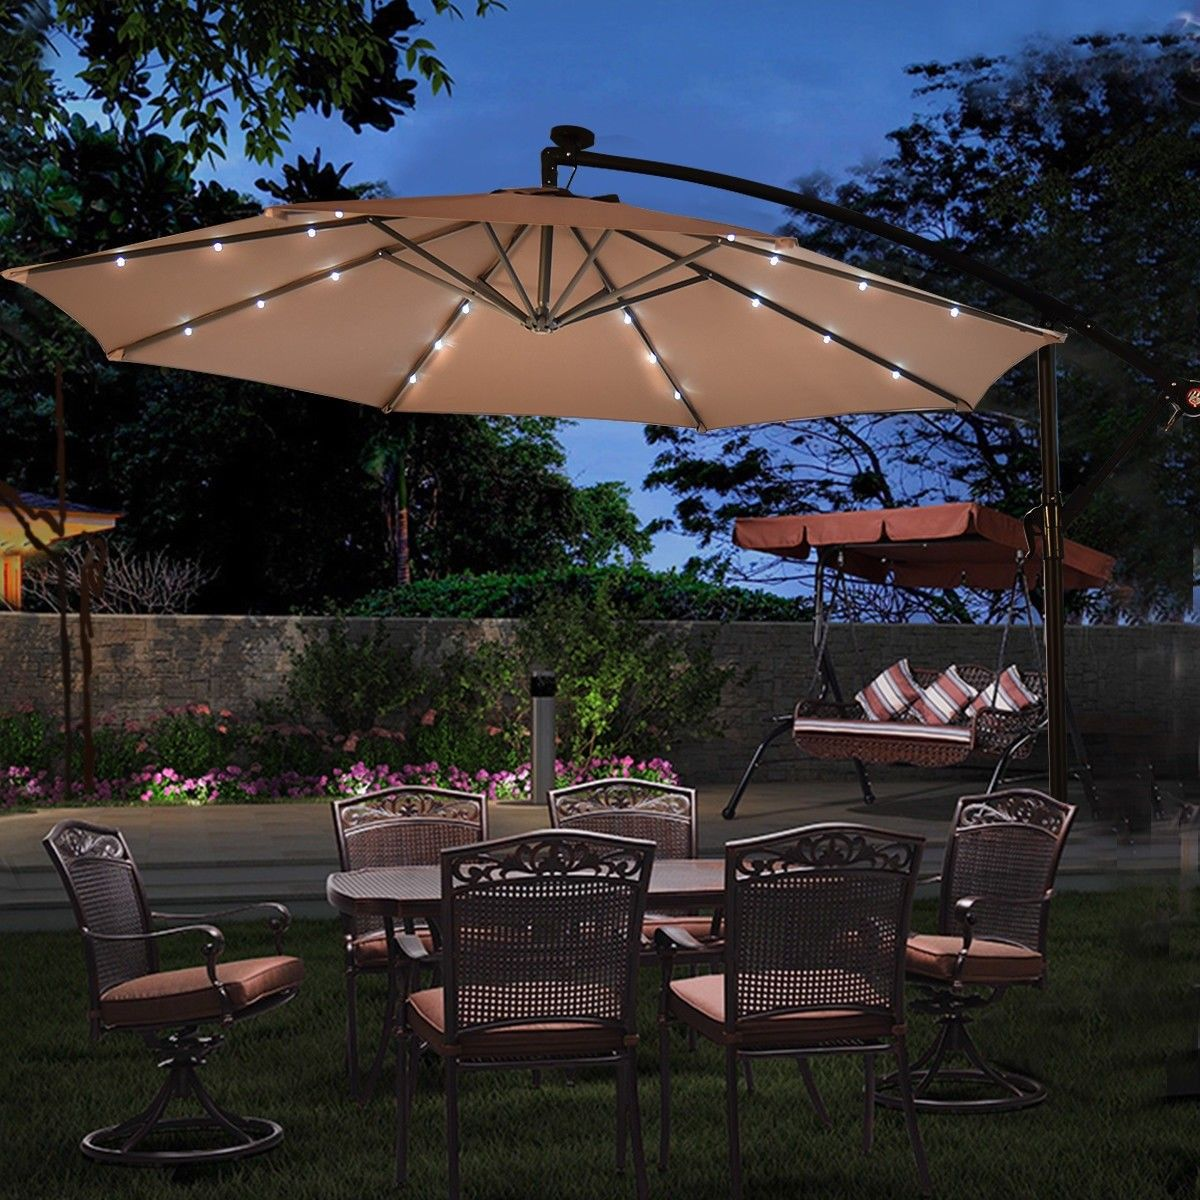 10 Patio Hanging Umbrella Sun Shade With Solar Led Lights Patio Shade Best Patio Umbrella Patio Sun Shades